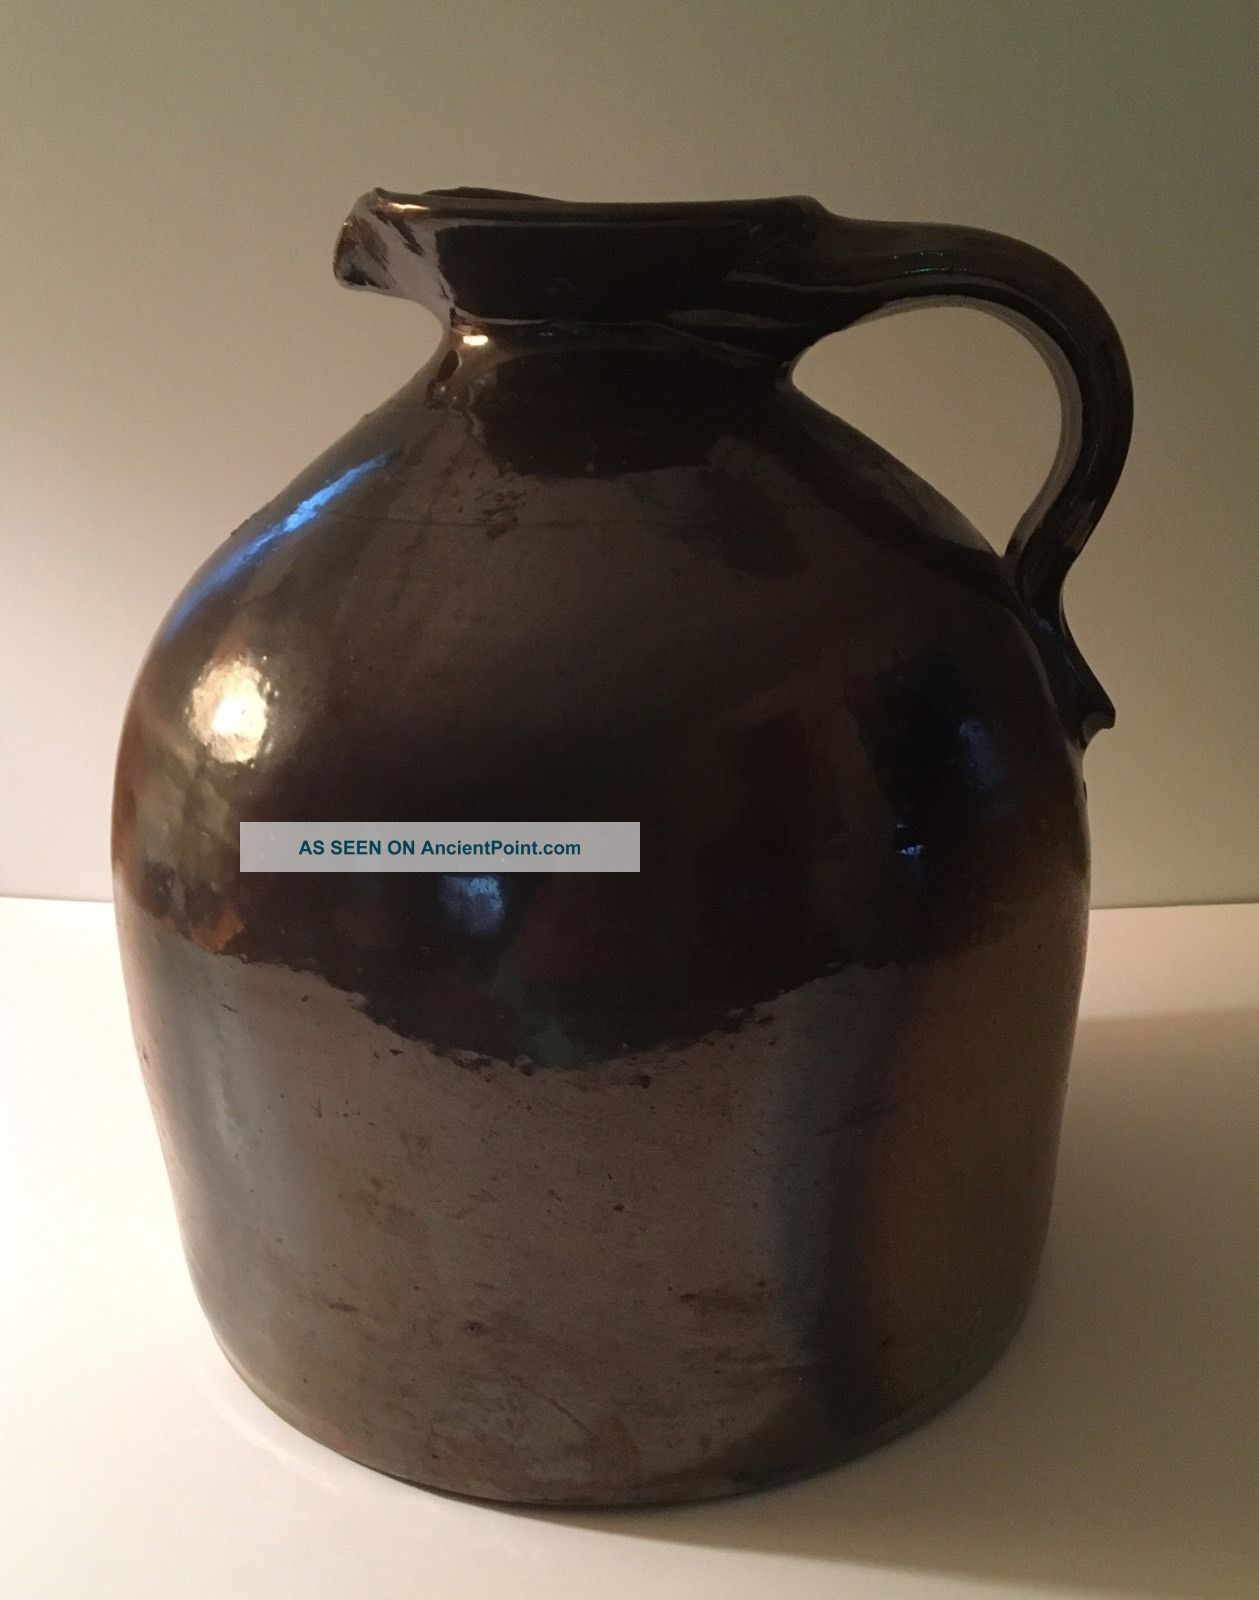 Antique Stoneware Jug Pittston Pa Brown Glaze Evan R Jones Jones Pottery Jugs photo